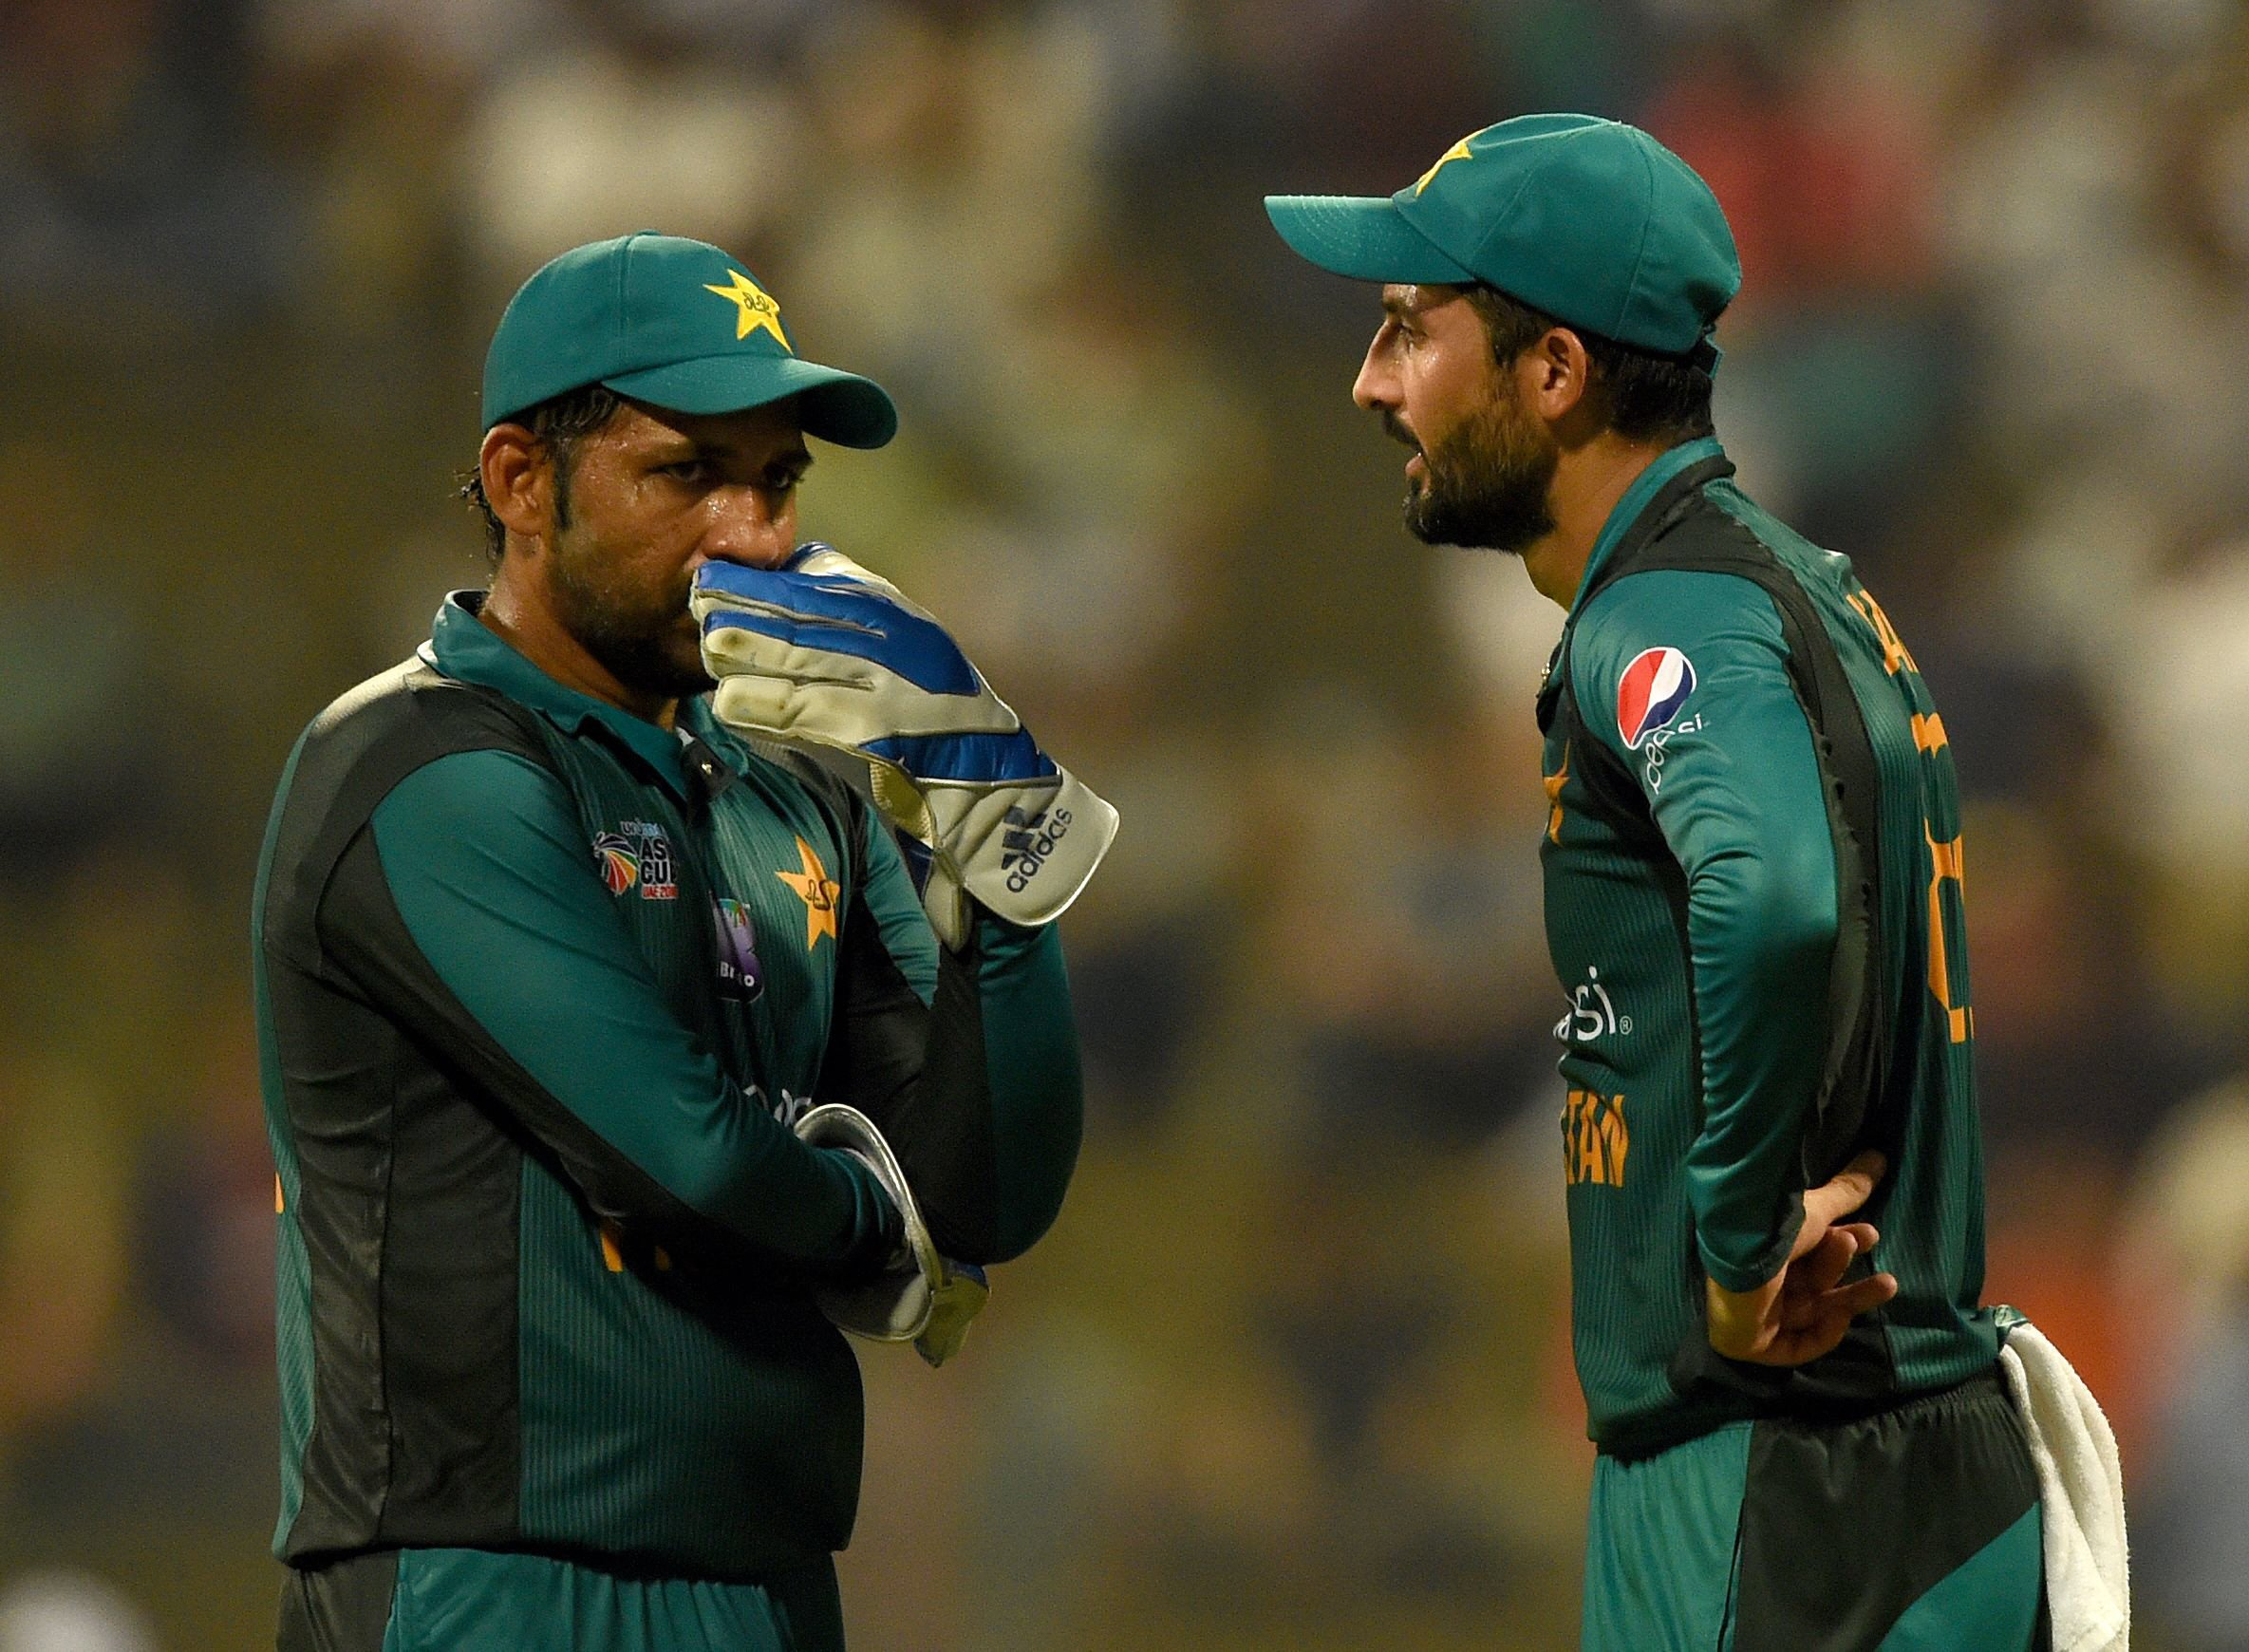 where did pakistan go wrong in asia cup